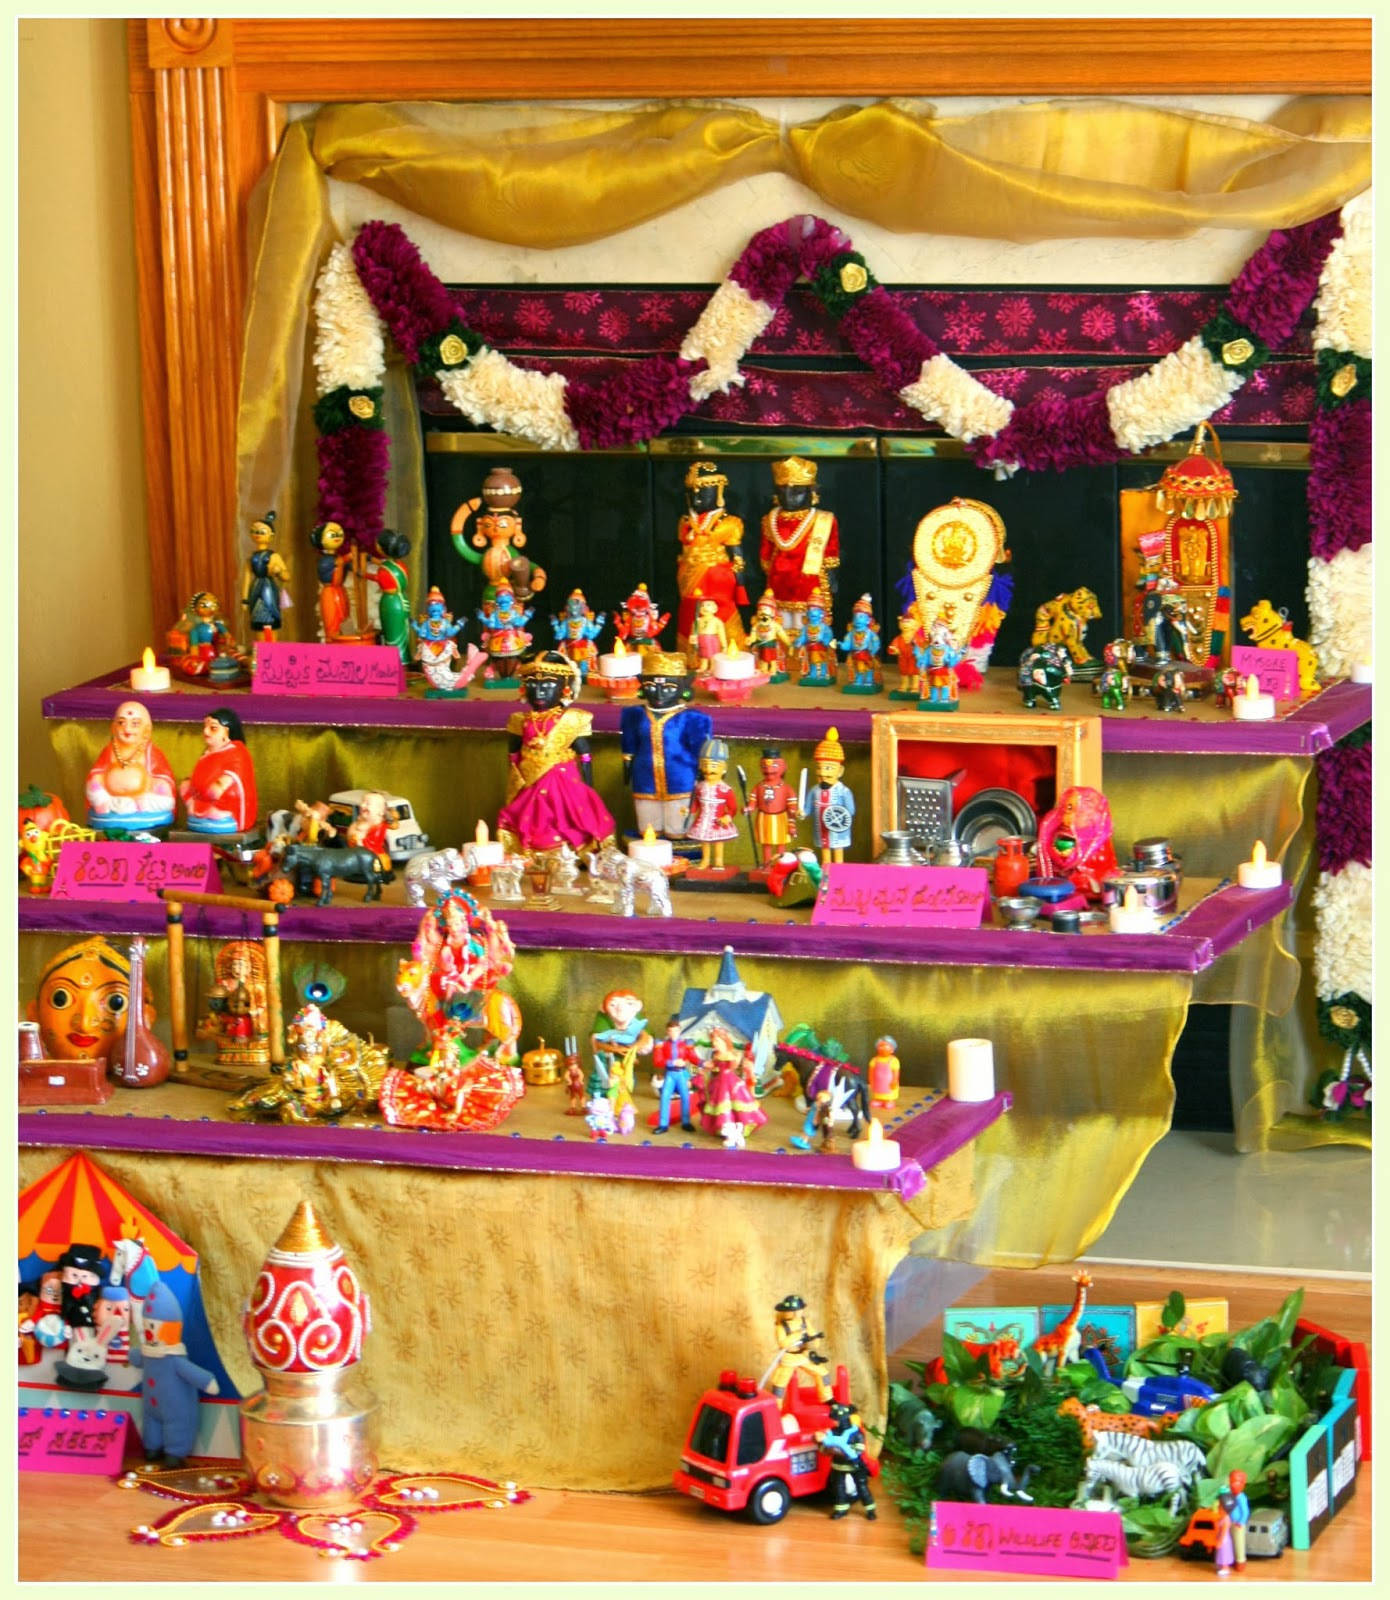 Home Decor Ideas For Navratri: Colors, Cuisines And Cultures Inspired!: Dasara